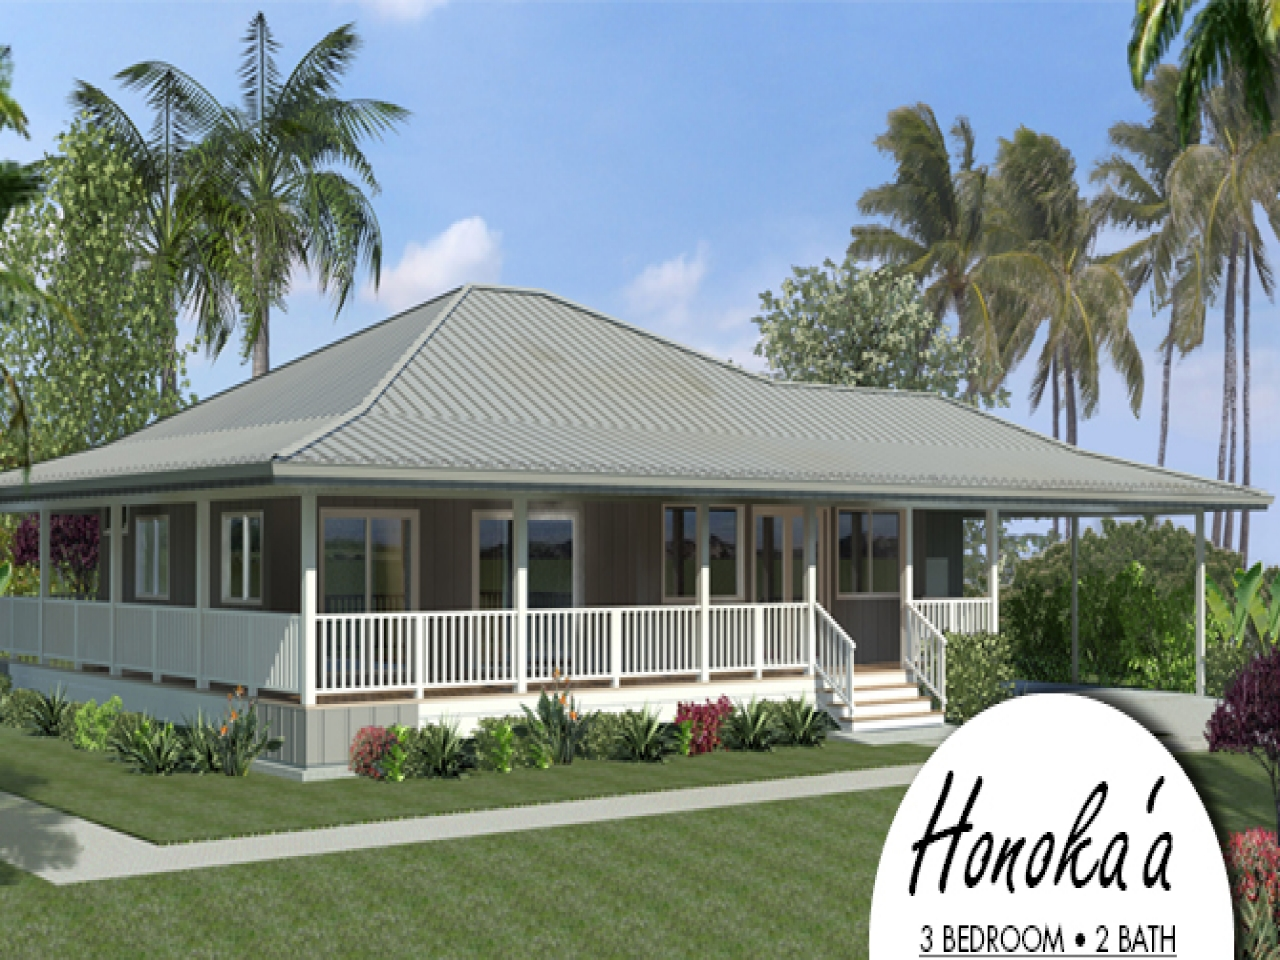 Island style house plans hawaiian plantation style house for Island style home plans